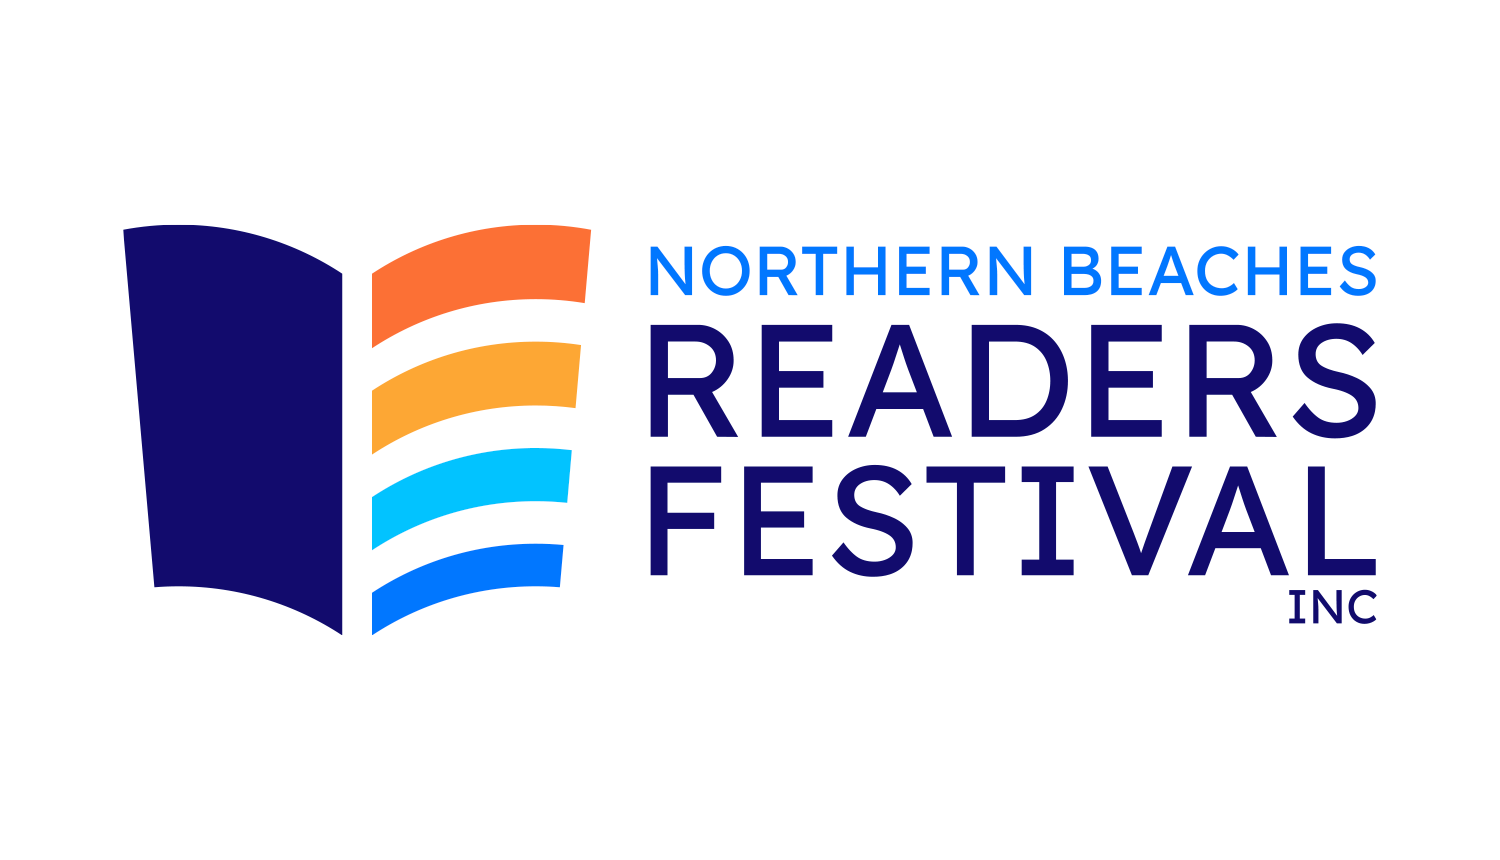 Northern Beaches Readers Festival